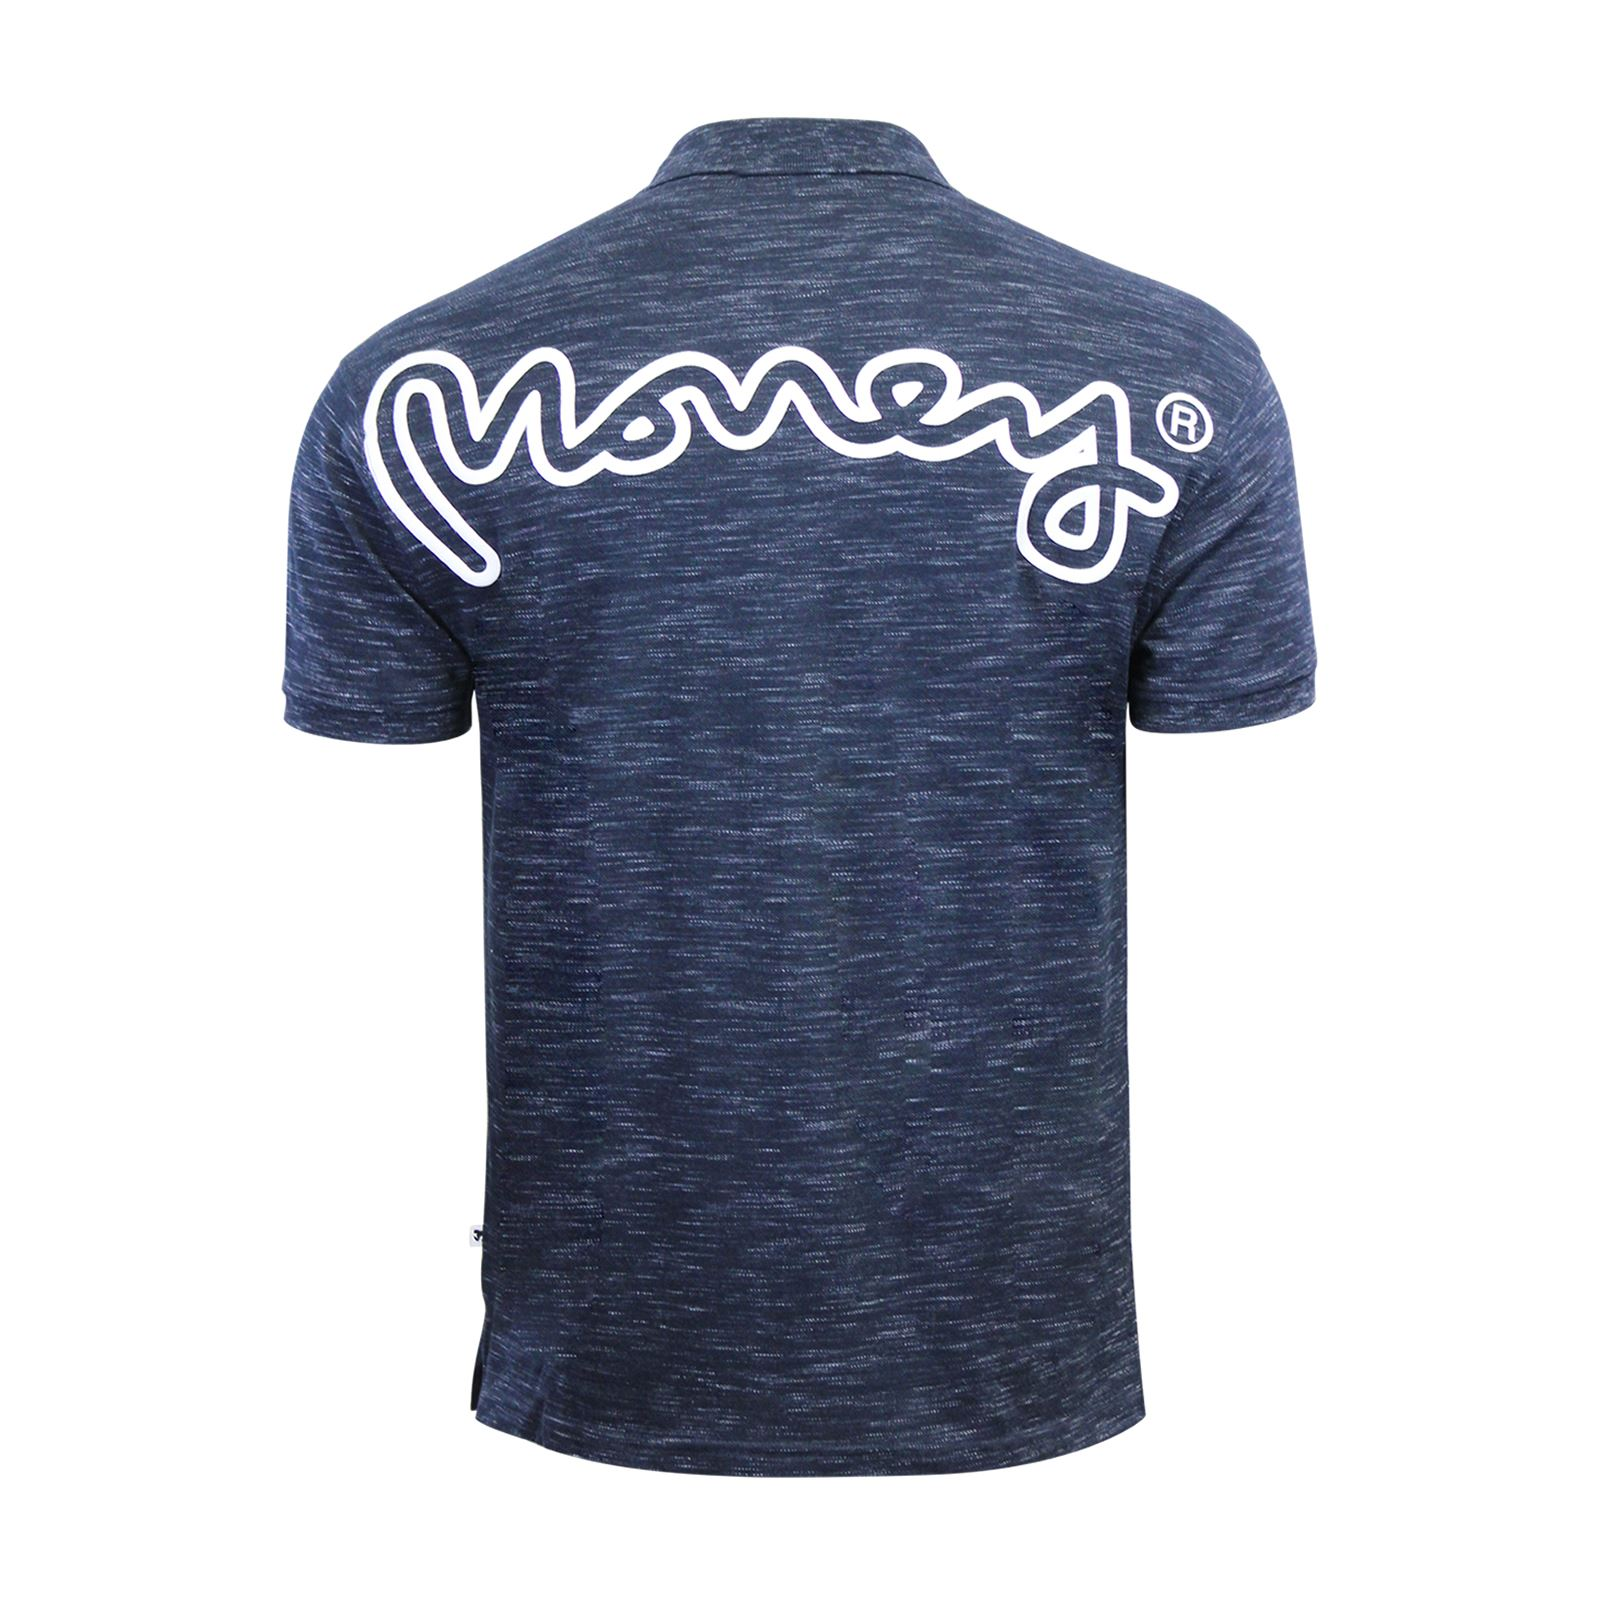 Mens-Polo-T-SHIRT-MONEY-toke-Rear-Printed-Short-Manche-Grindle-Collar-Casual-Top miniature 5